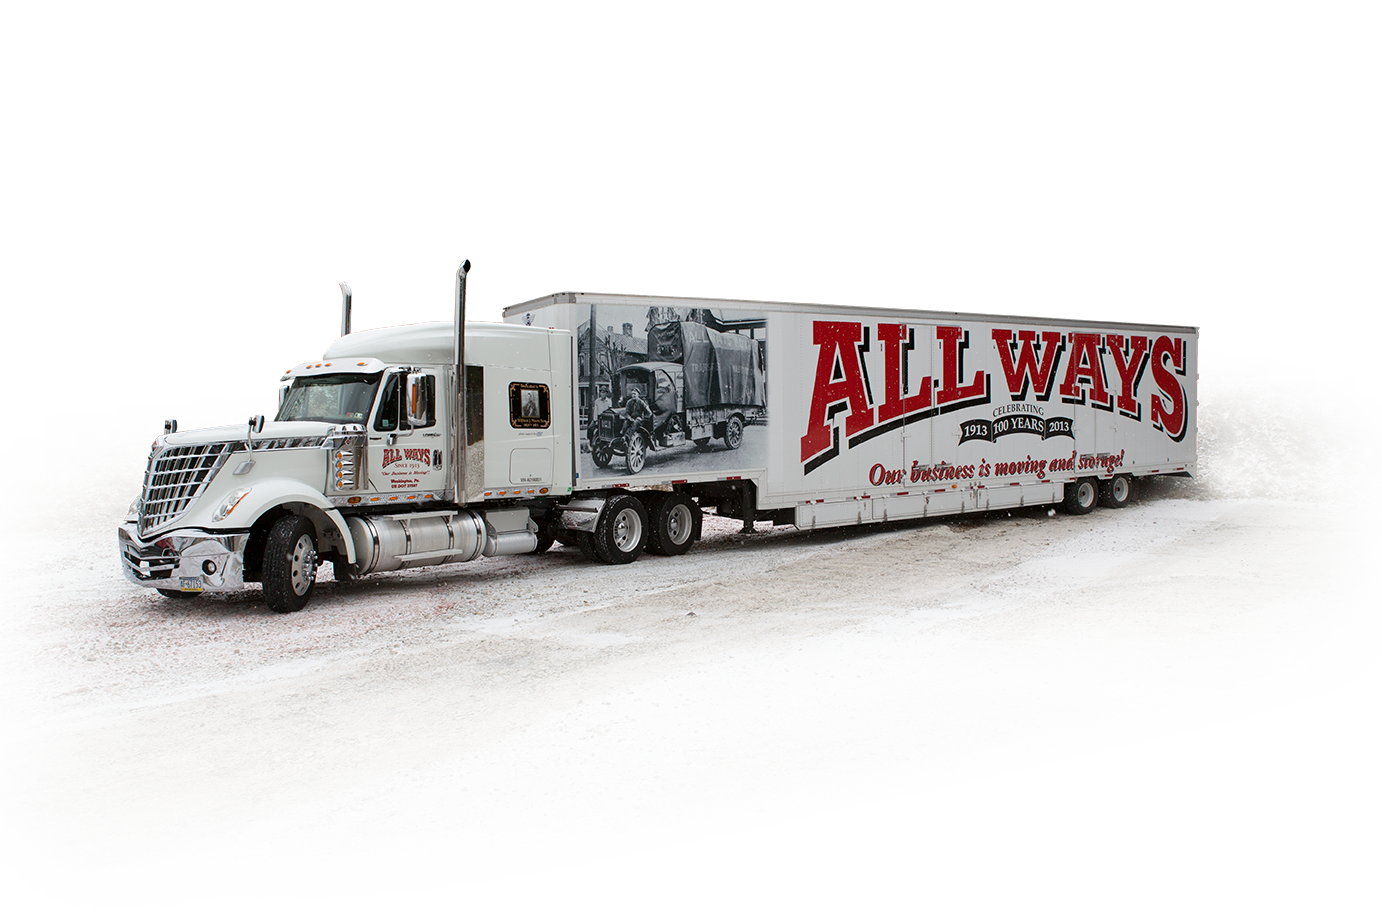 All Ways Moving & Storage Transportation Vehicle